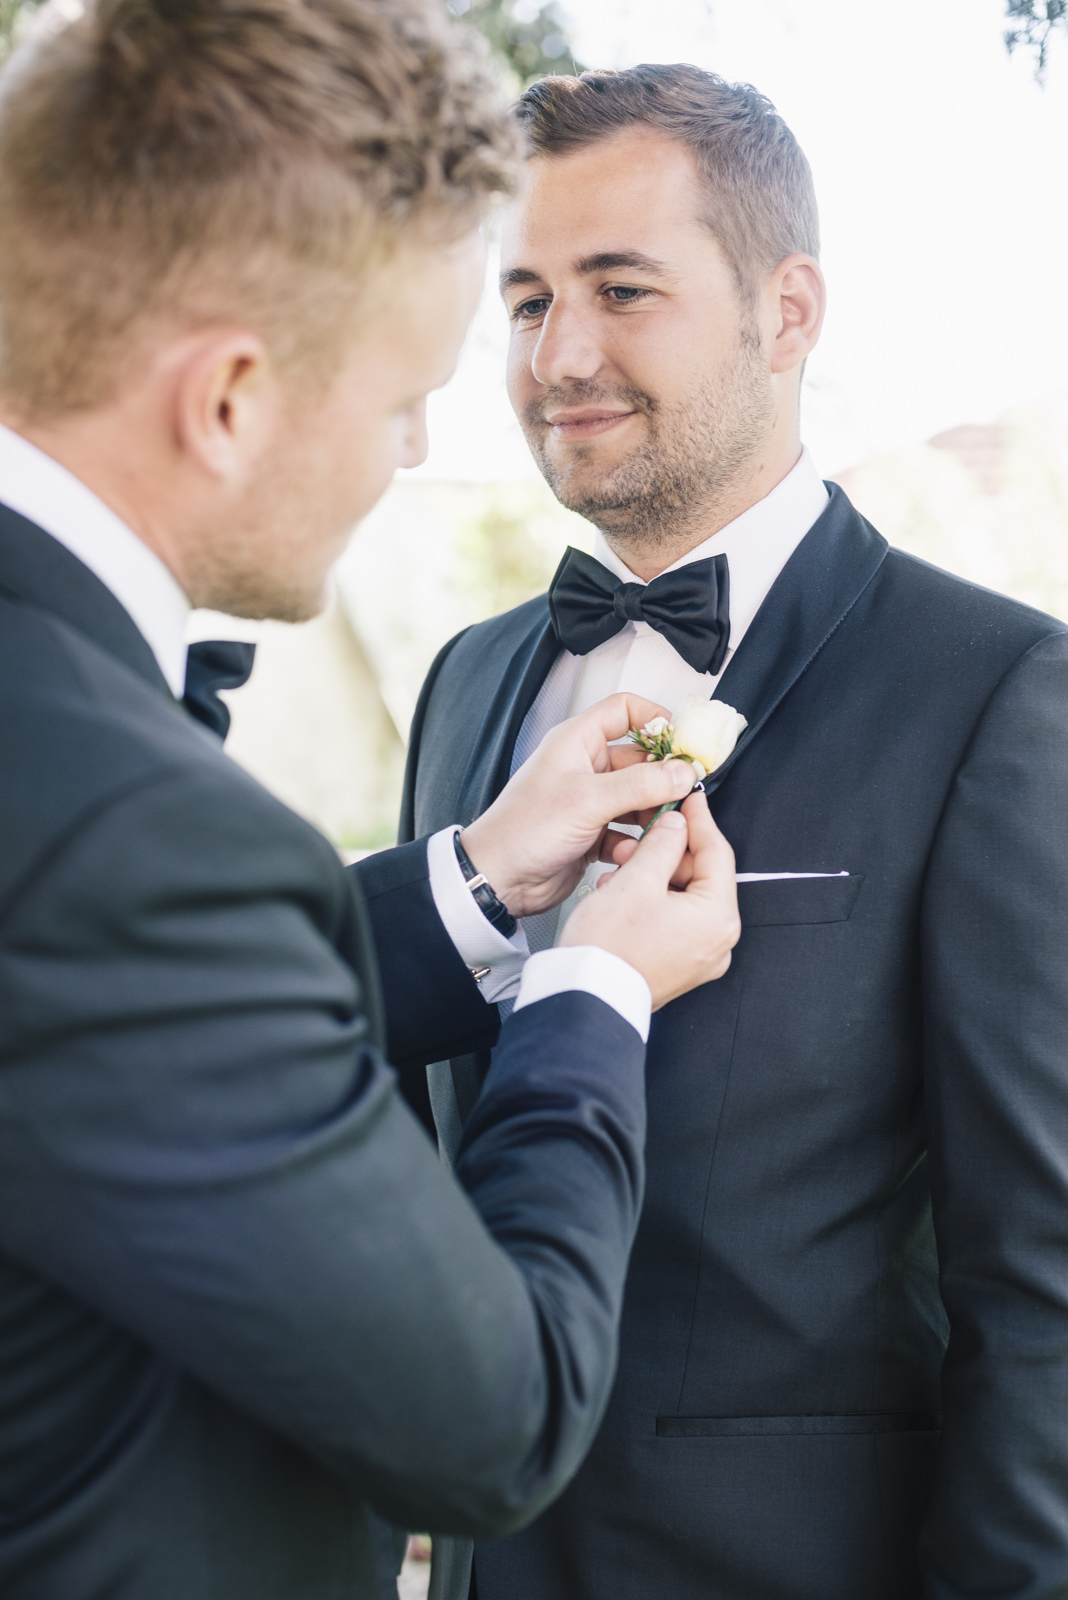 the best man put the boutonniere on the groom's jacket